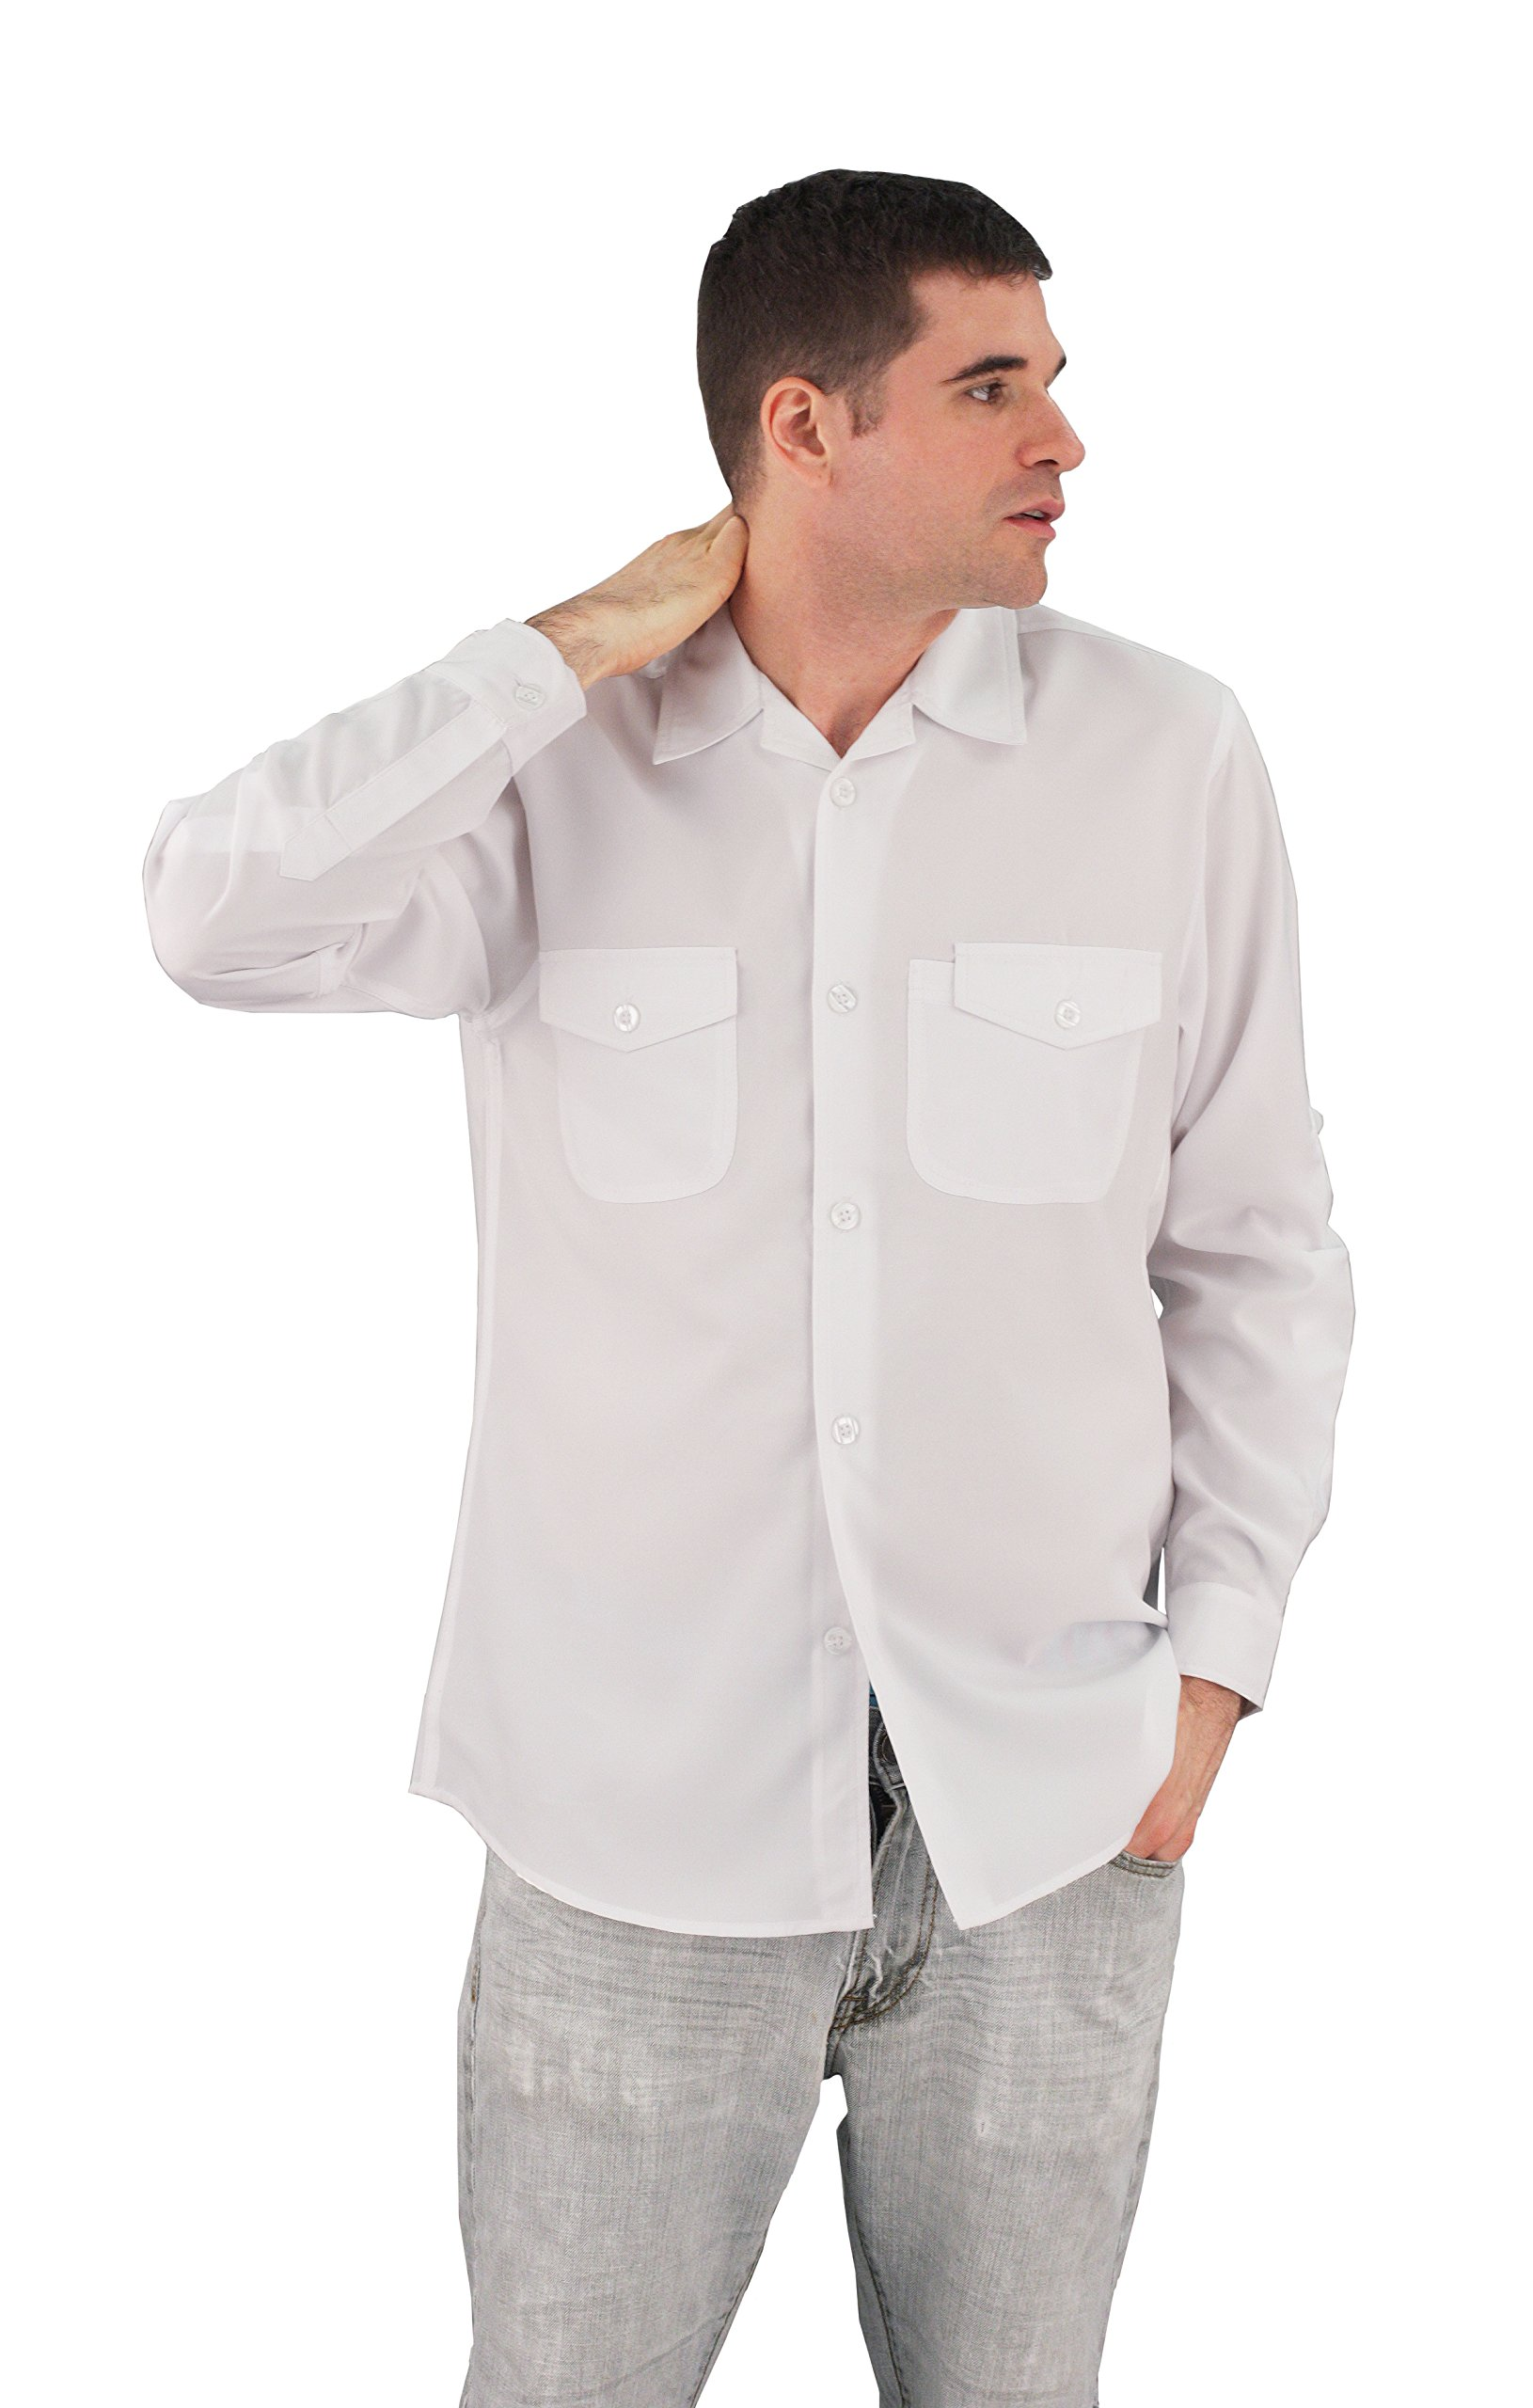 ASD Living Zanzibar Long Sleeve Dry Fit Server Waitstaff Shirt, X-Large, White by ASD Living